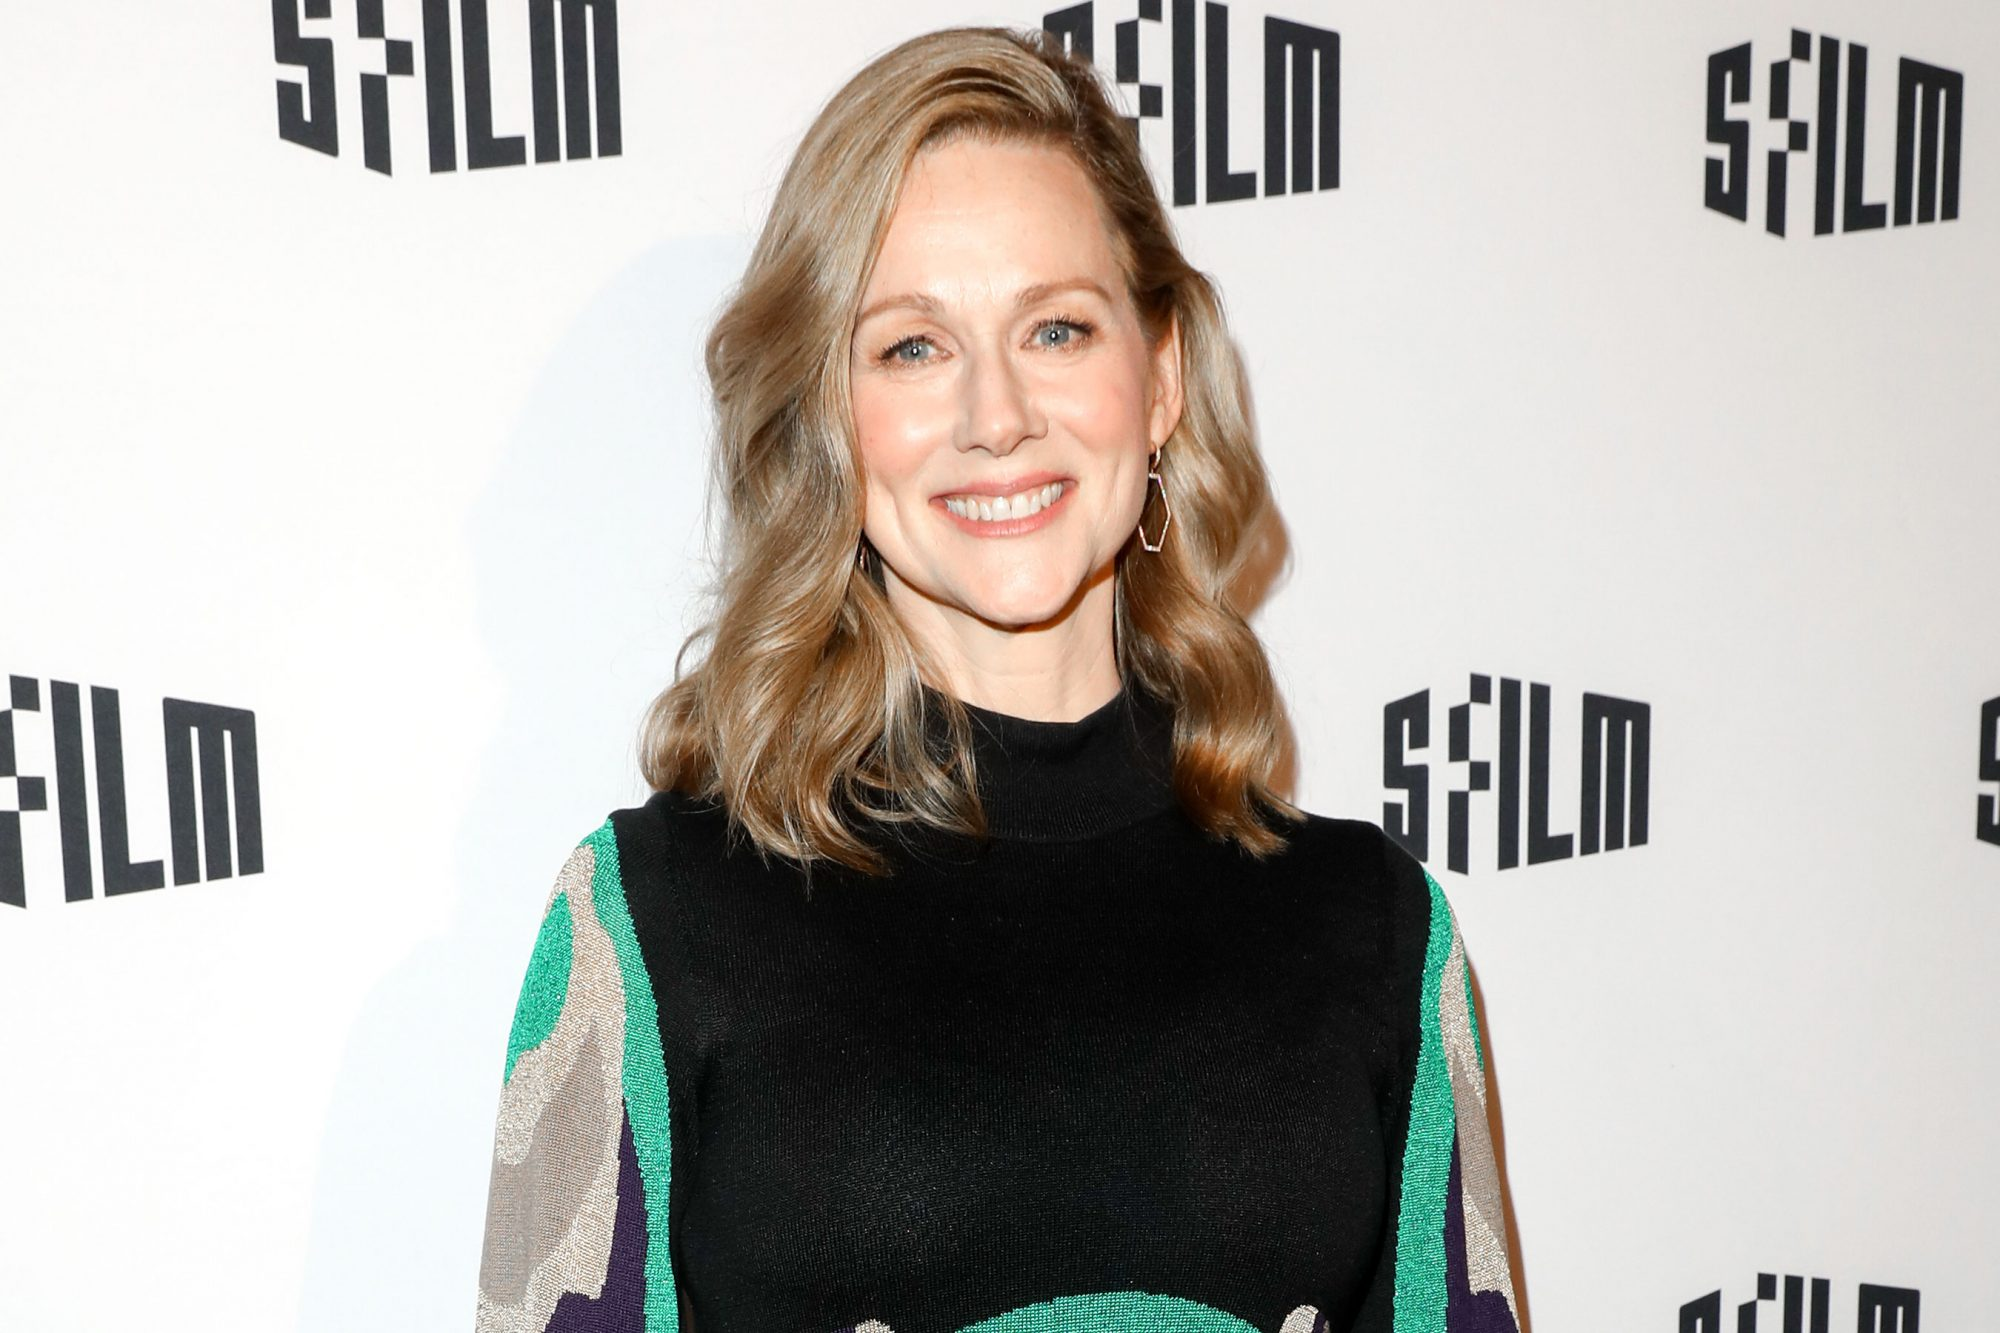 SAN FRANCISCO, CALIFORNIA - APRIL 10: Laura Linney poses for a photo on the red carpet at the Tales of the City Premiere at the Castro Theater on April 10, 2019 in San Francisco, California. (Photo by Kelly Sullivan/Getty Images for Netflix)